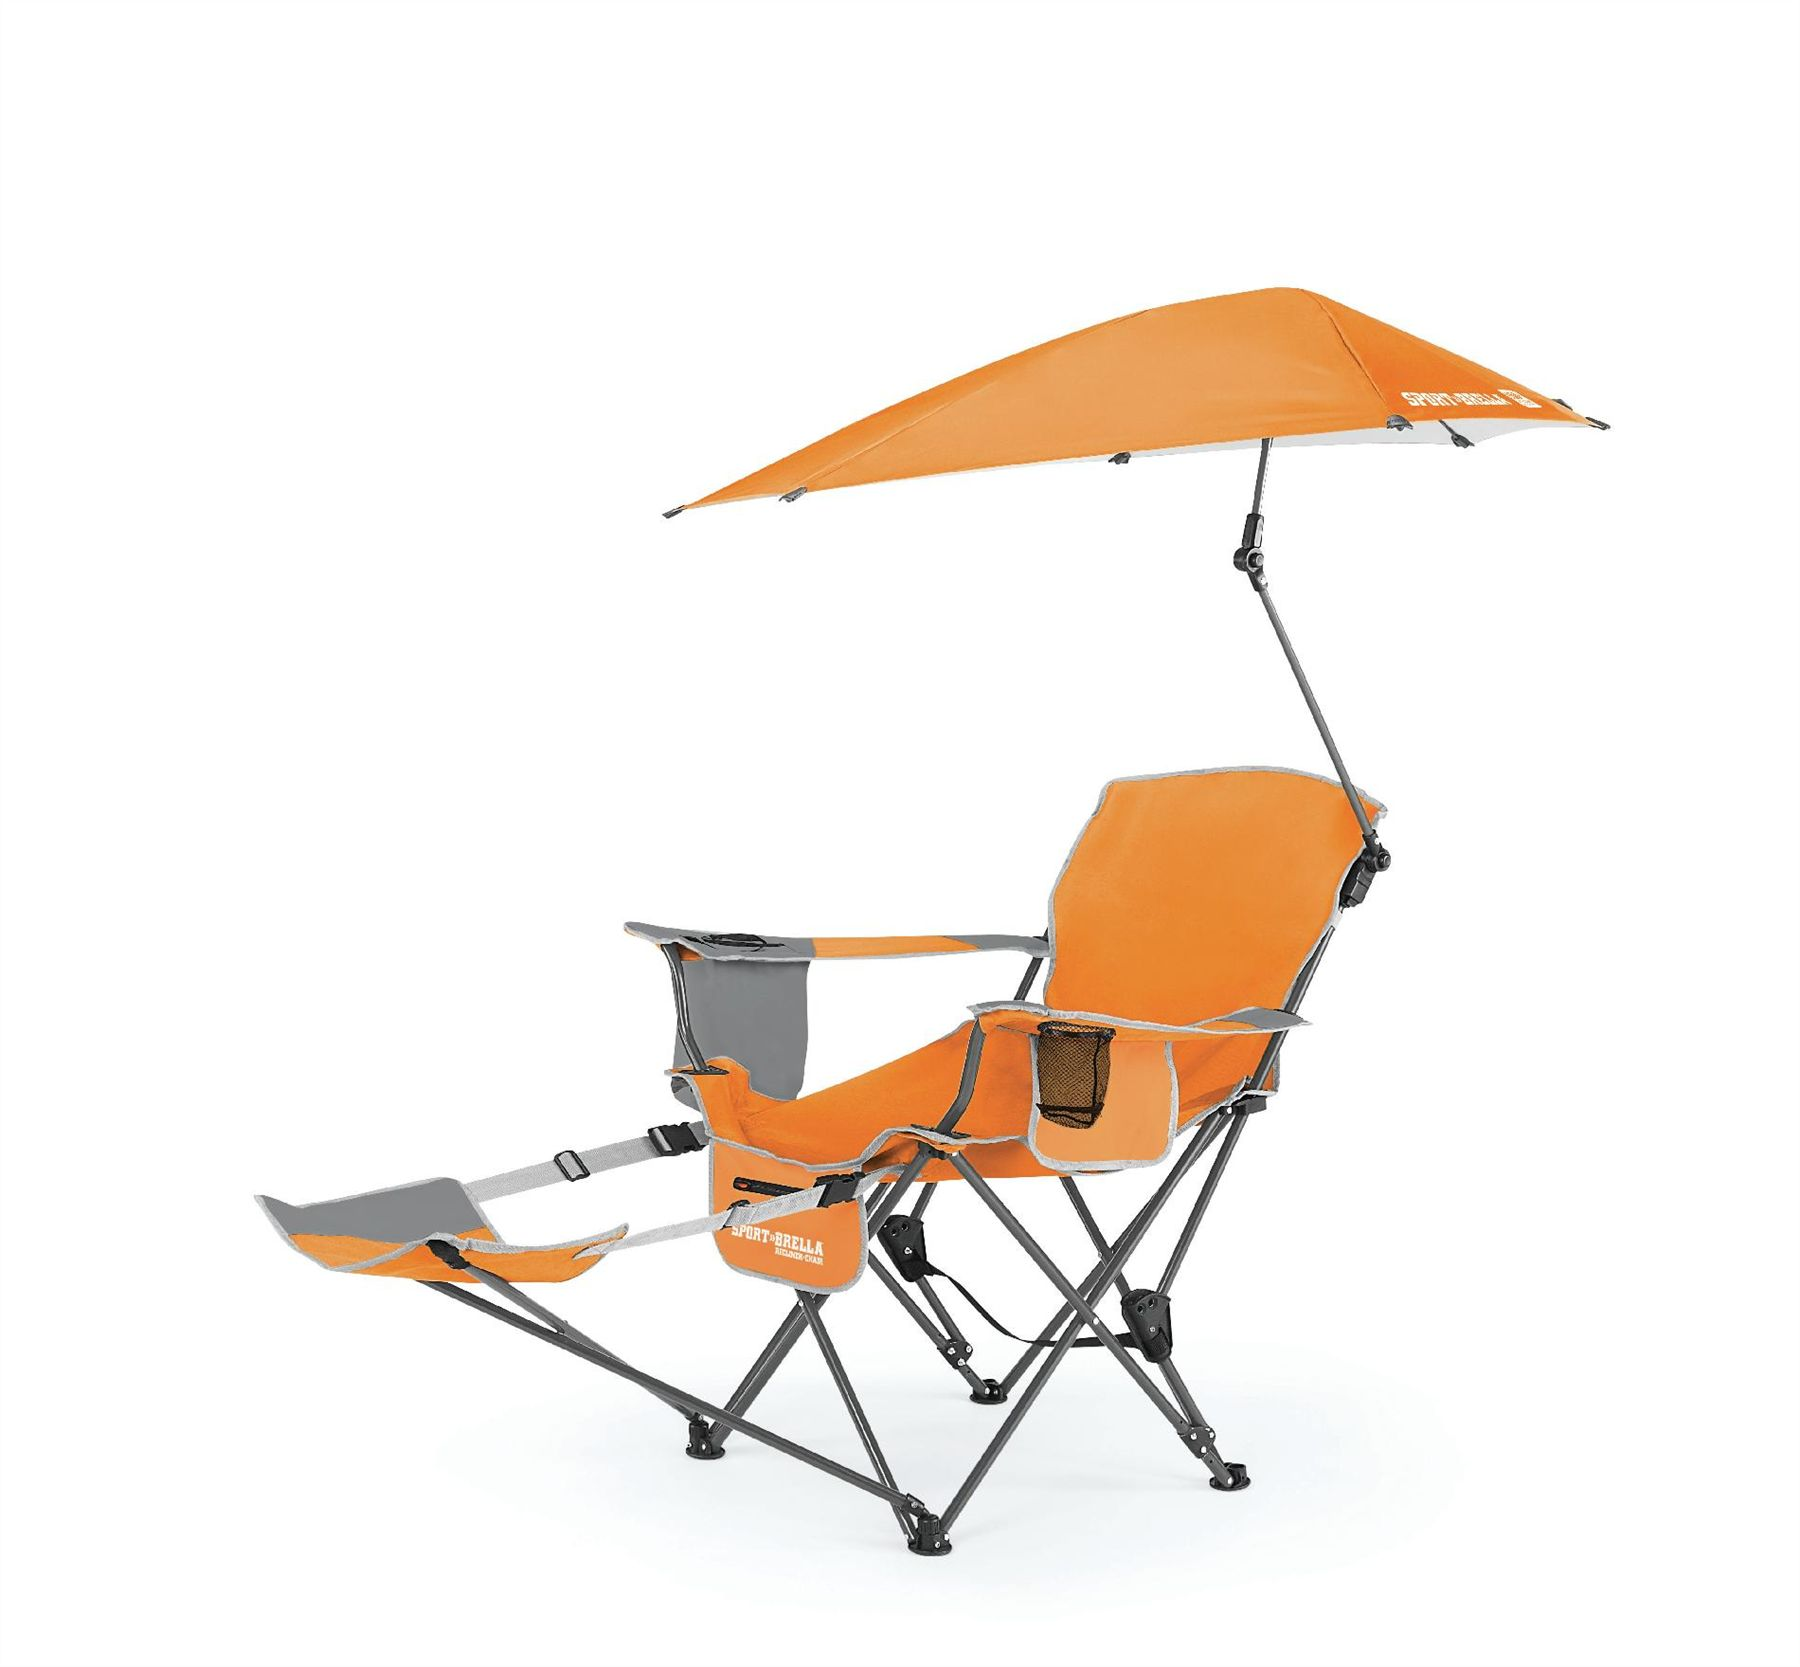 Reclining Camp Chair Sportbrella Portable Camping Chair Folding Recliner Seat